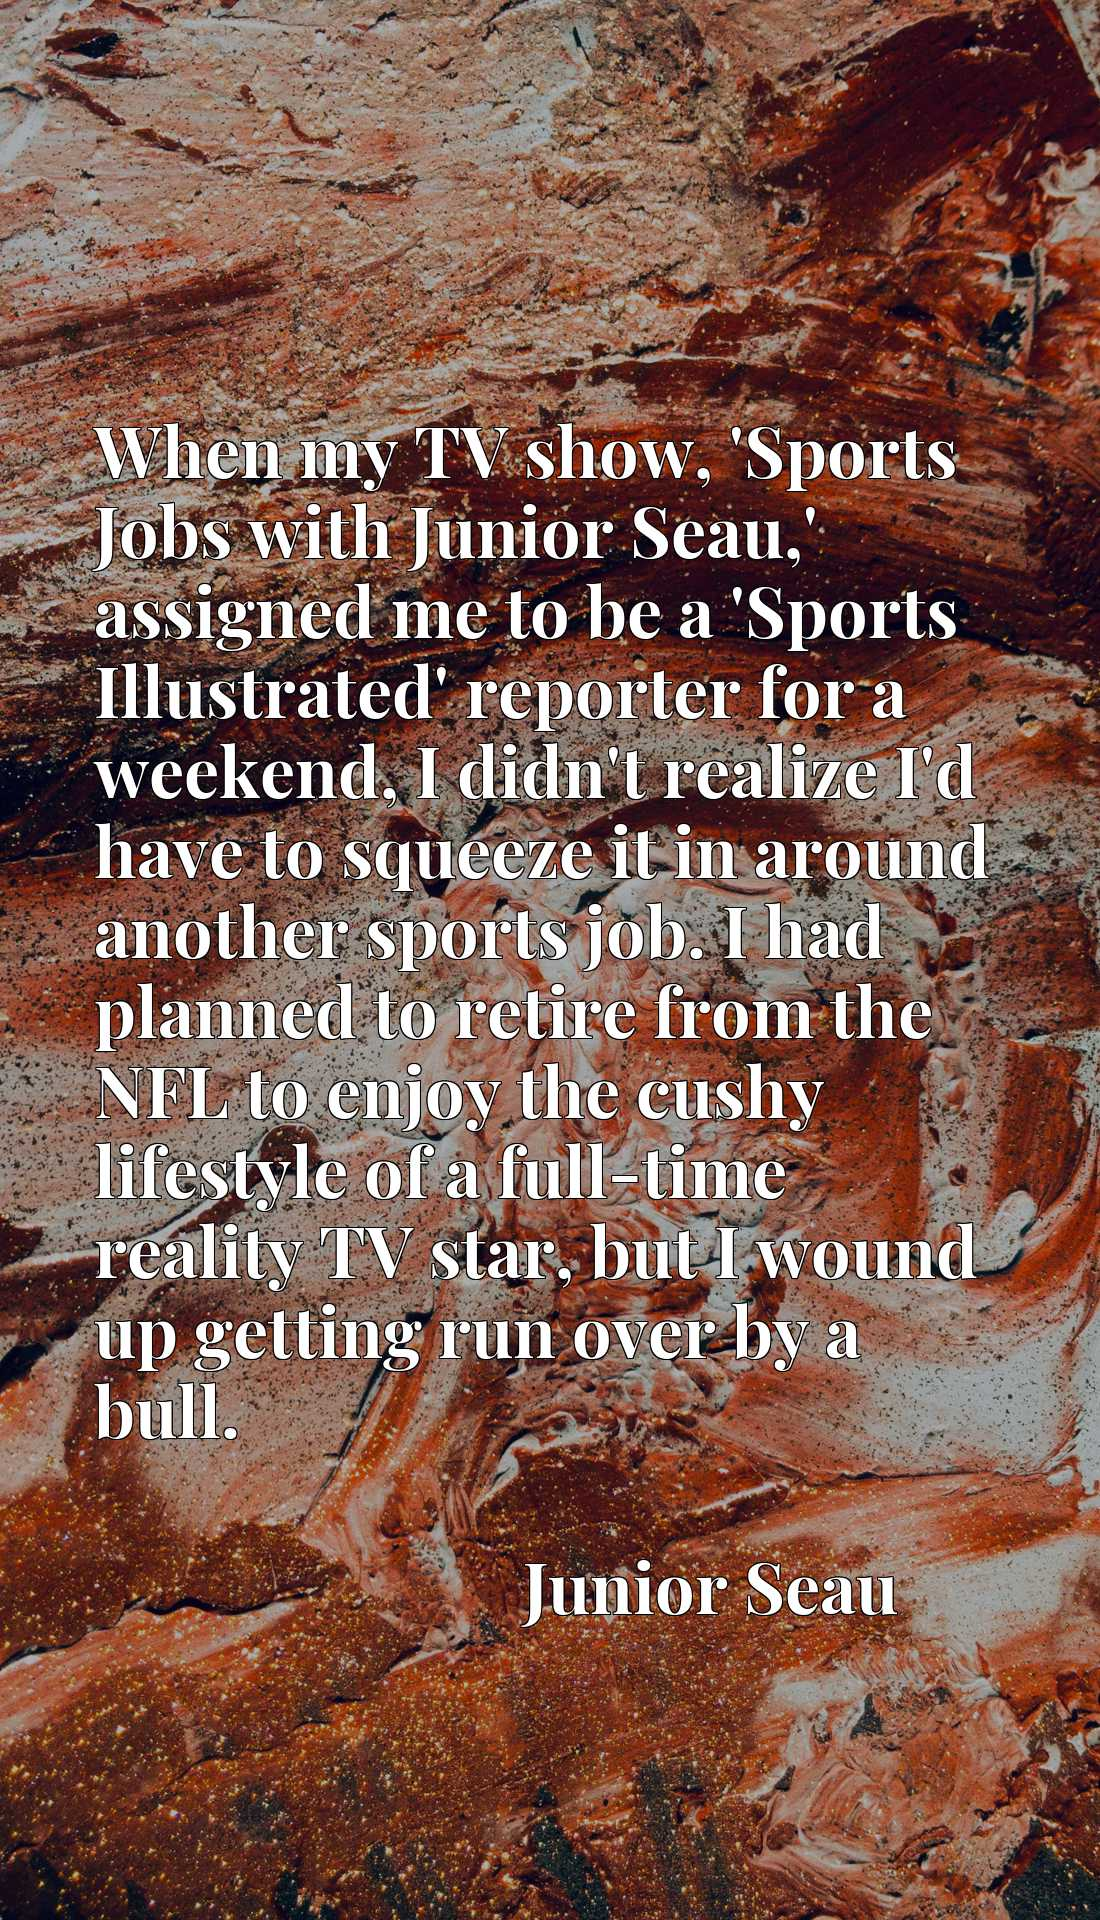 When my TV show, 'Sports Jobs with Junior Seau,' assigned me to be a 'Sports Illustrated' reporter for a weekend, I didn't realize I'd have to squeeze it in around another sports job. I had planned to retire from the NFL to enjoy the cushy lifestyle of a full-time reality TV star, but I wound up getting run over by a bull.